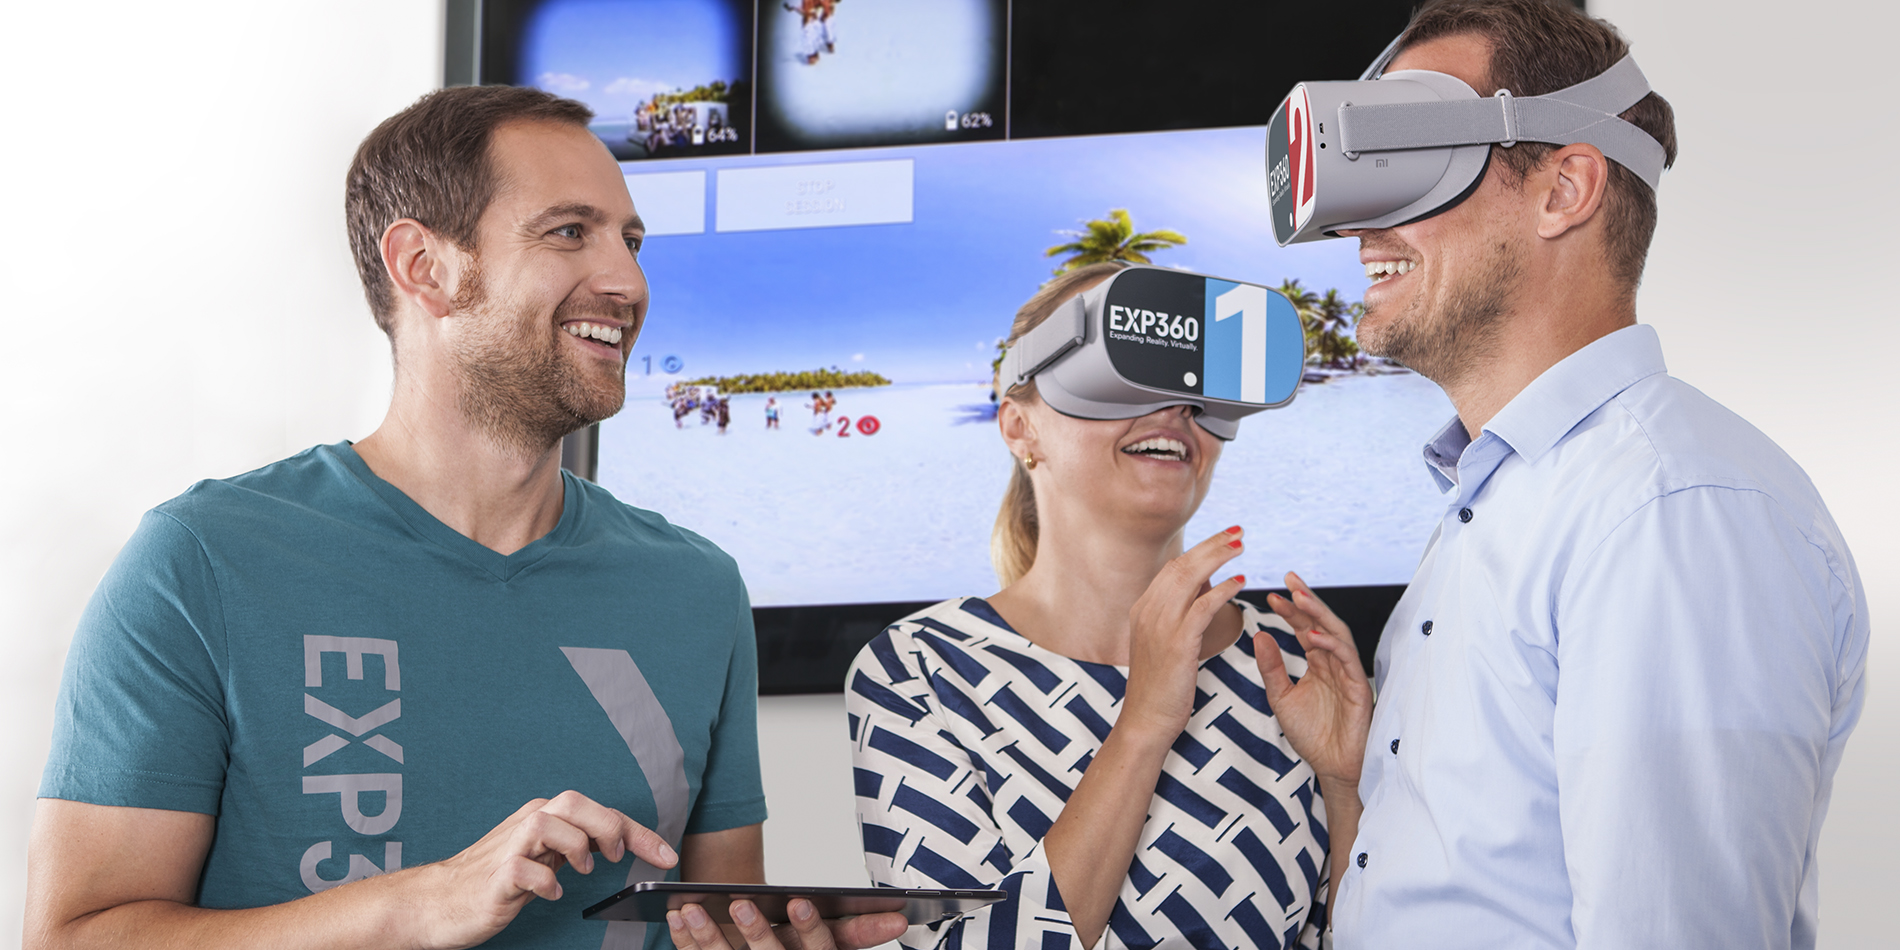 Use the Guide Kit to guide your audience through your 360 and VR content